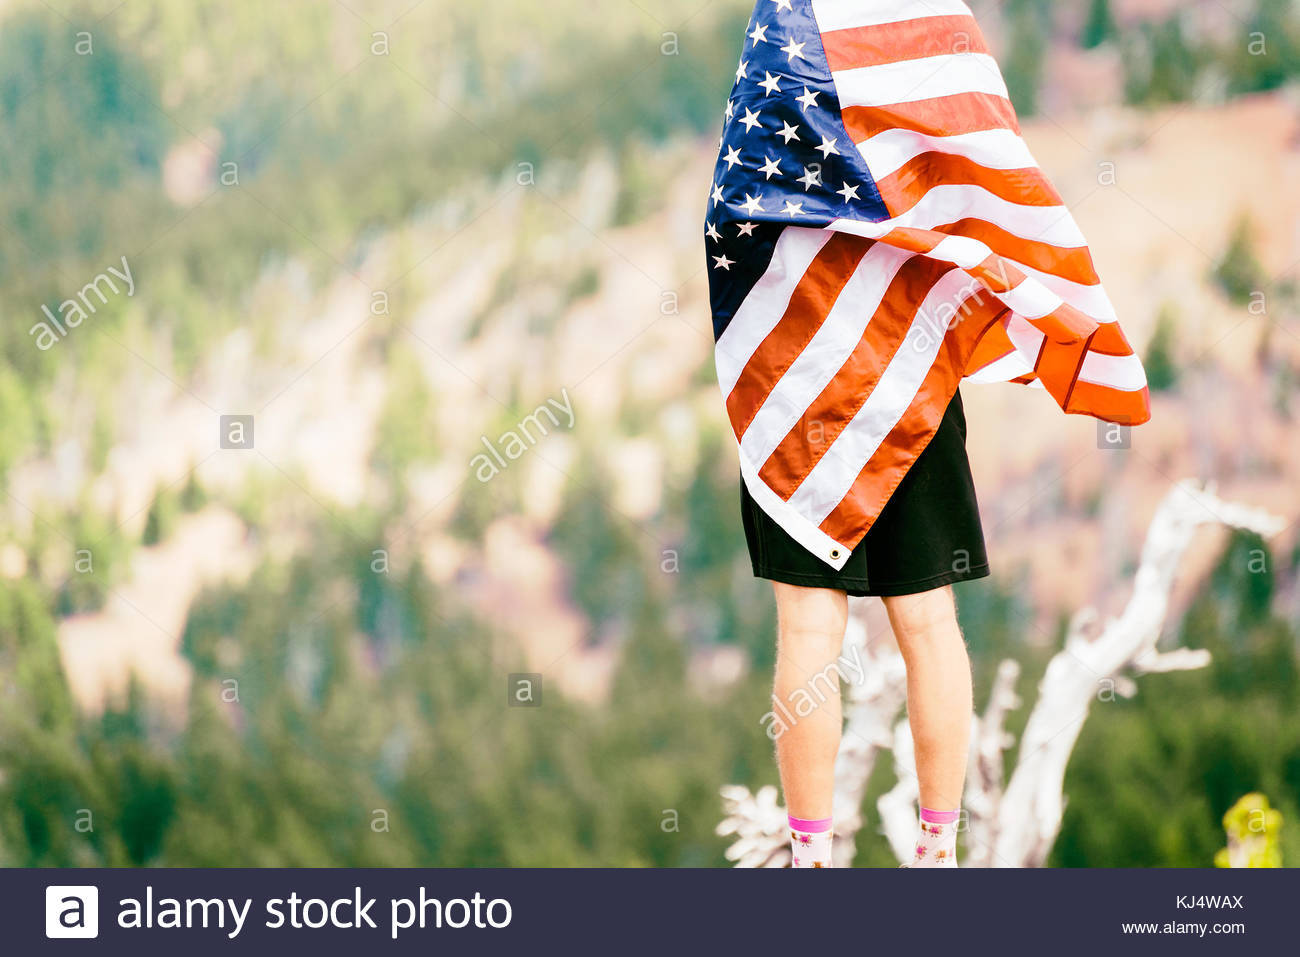 Wrapped in the American flag - Stock Image